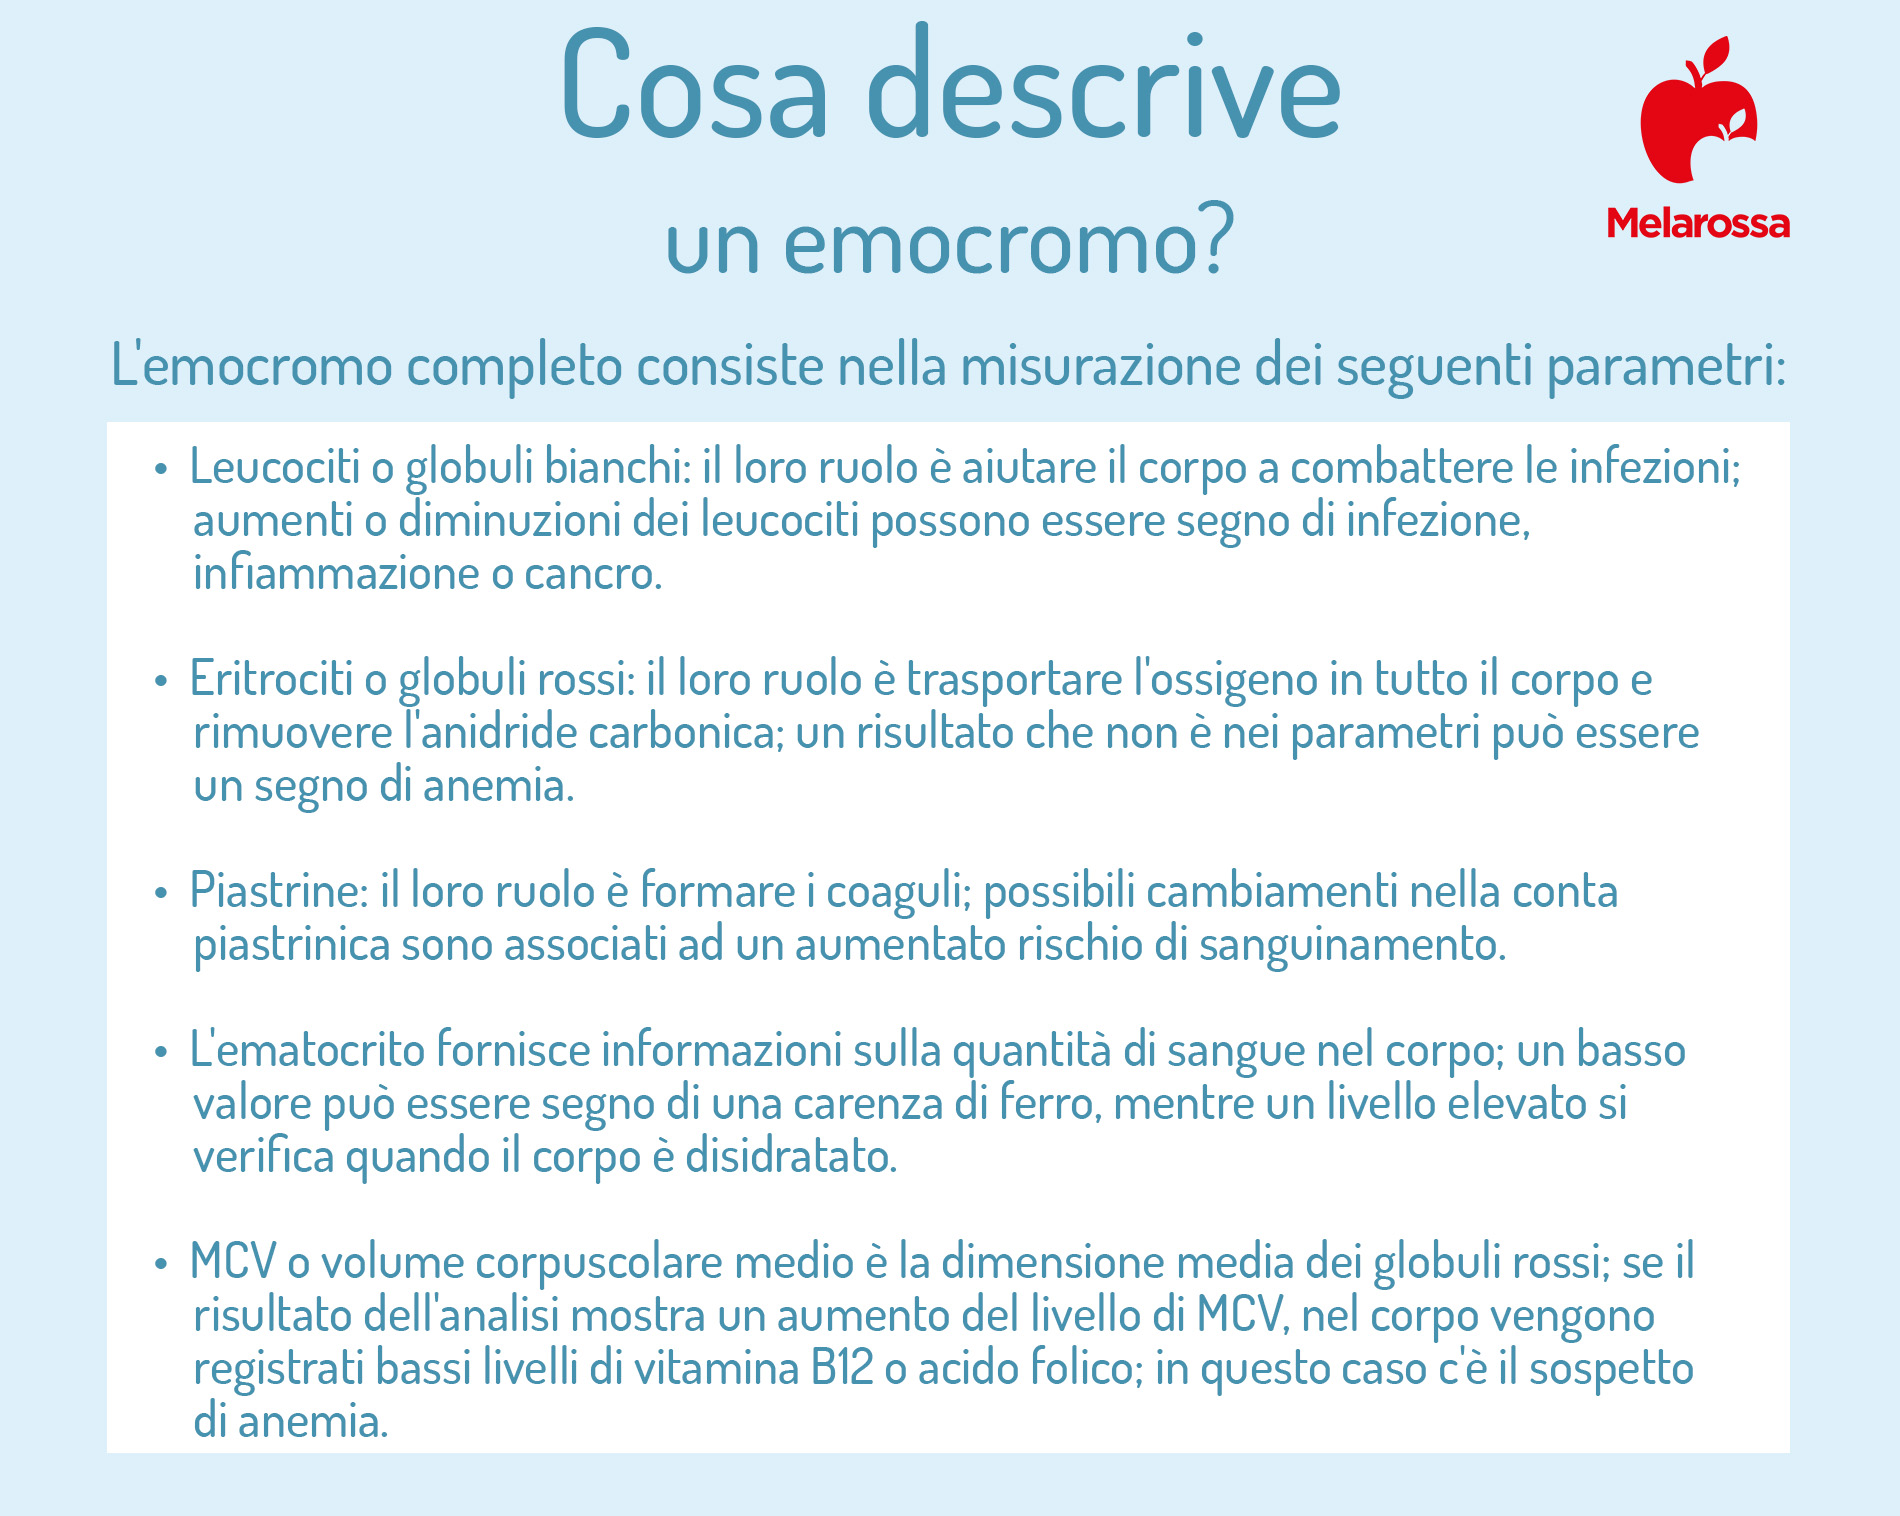 emocromo: cosa descrive